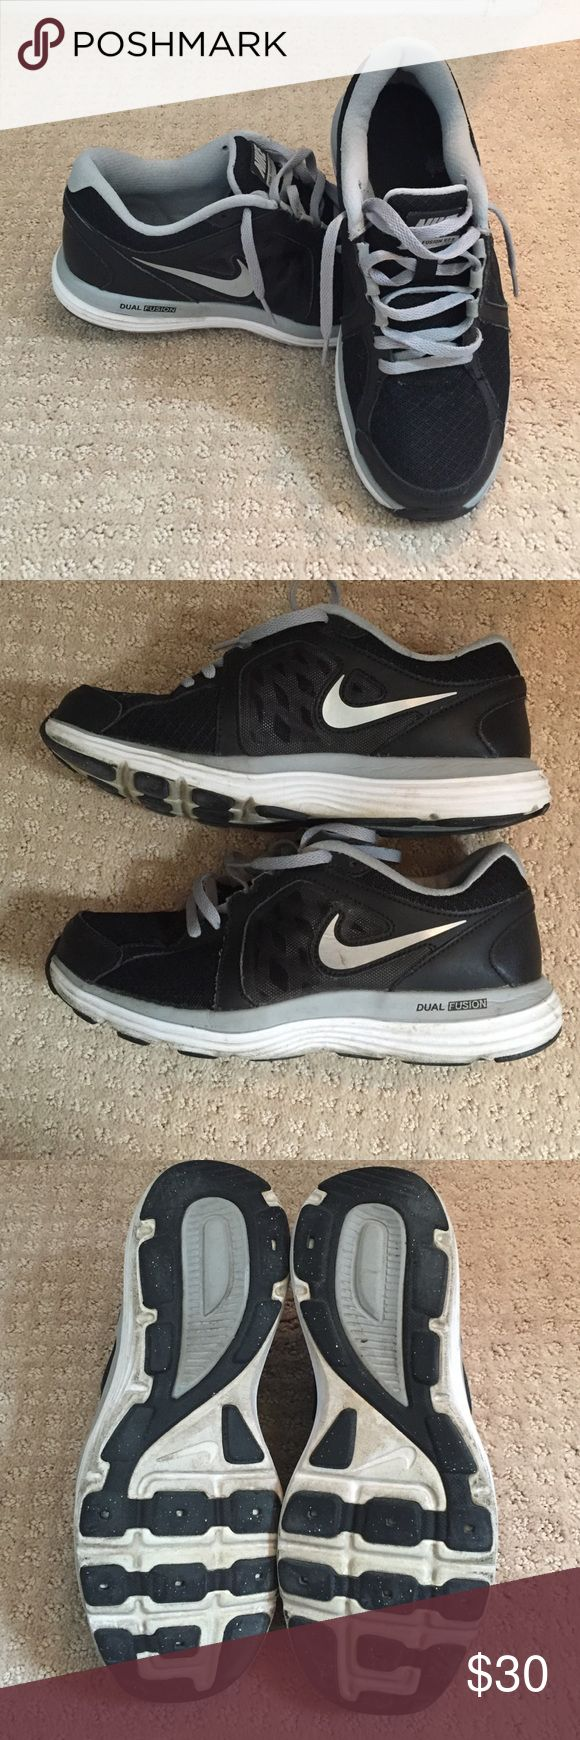 Nike Dual Fusion shoes size 7 Used. Good condition. Slightly dirty from being worn outside. Nike Shoes Sneakers